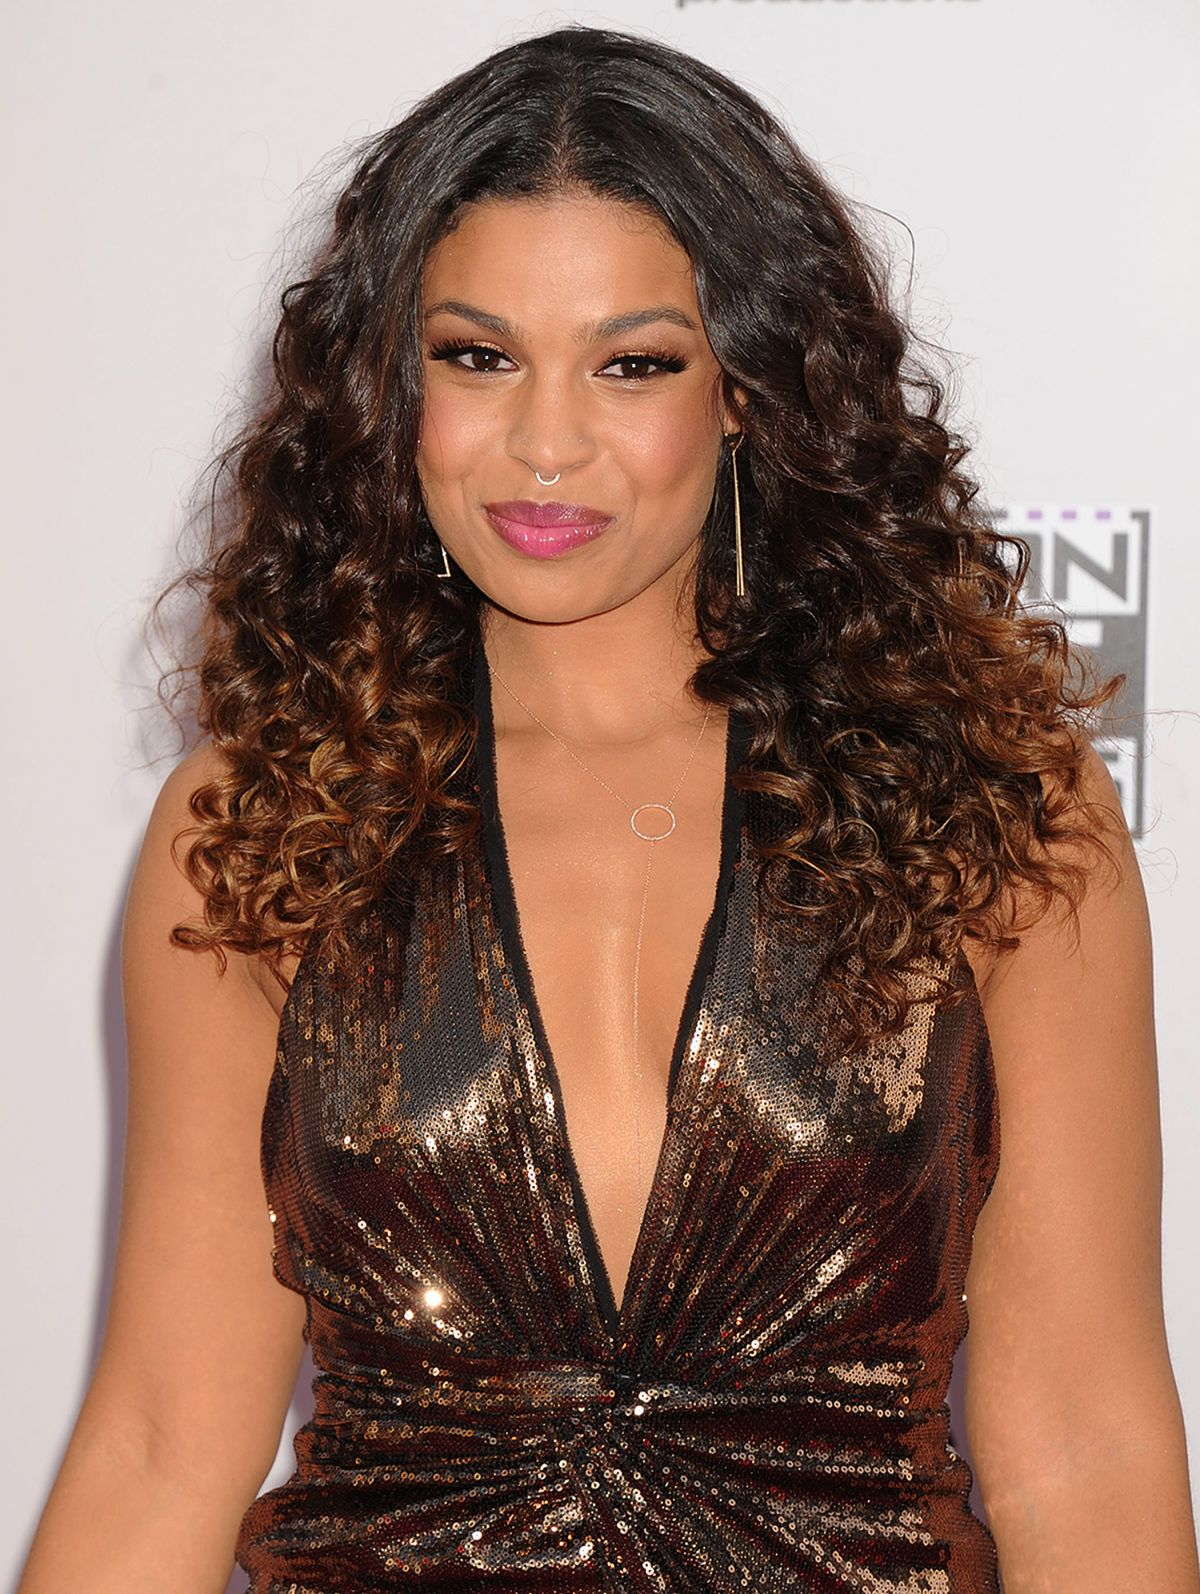 JORDIN SPARKS at 2014 American Music Awards in Los Angeles ...